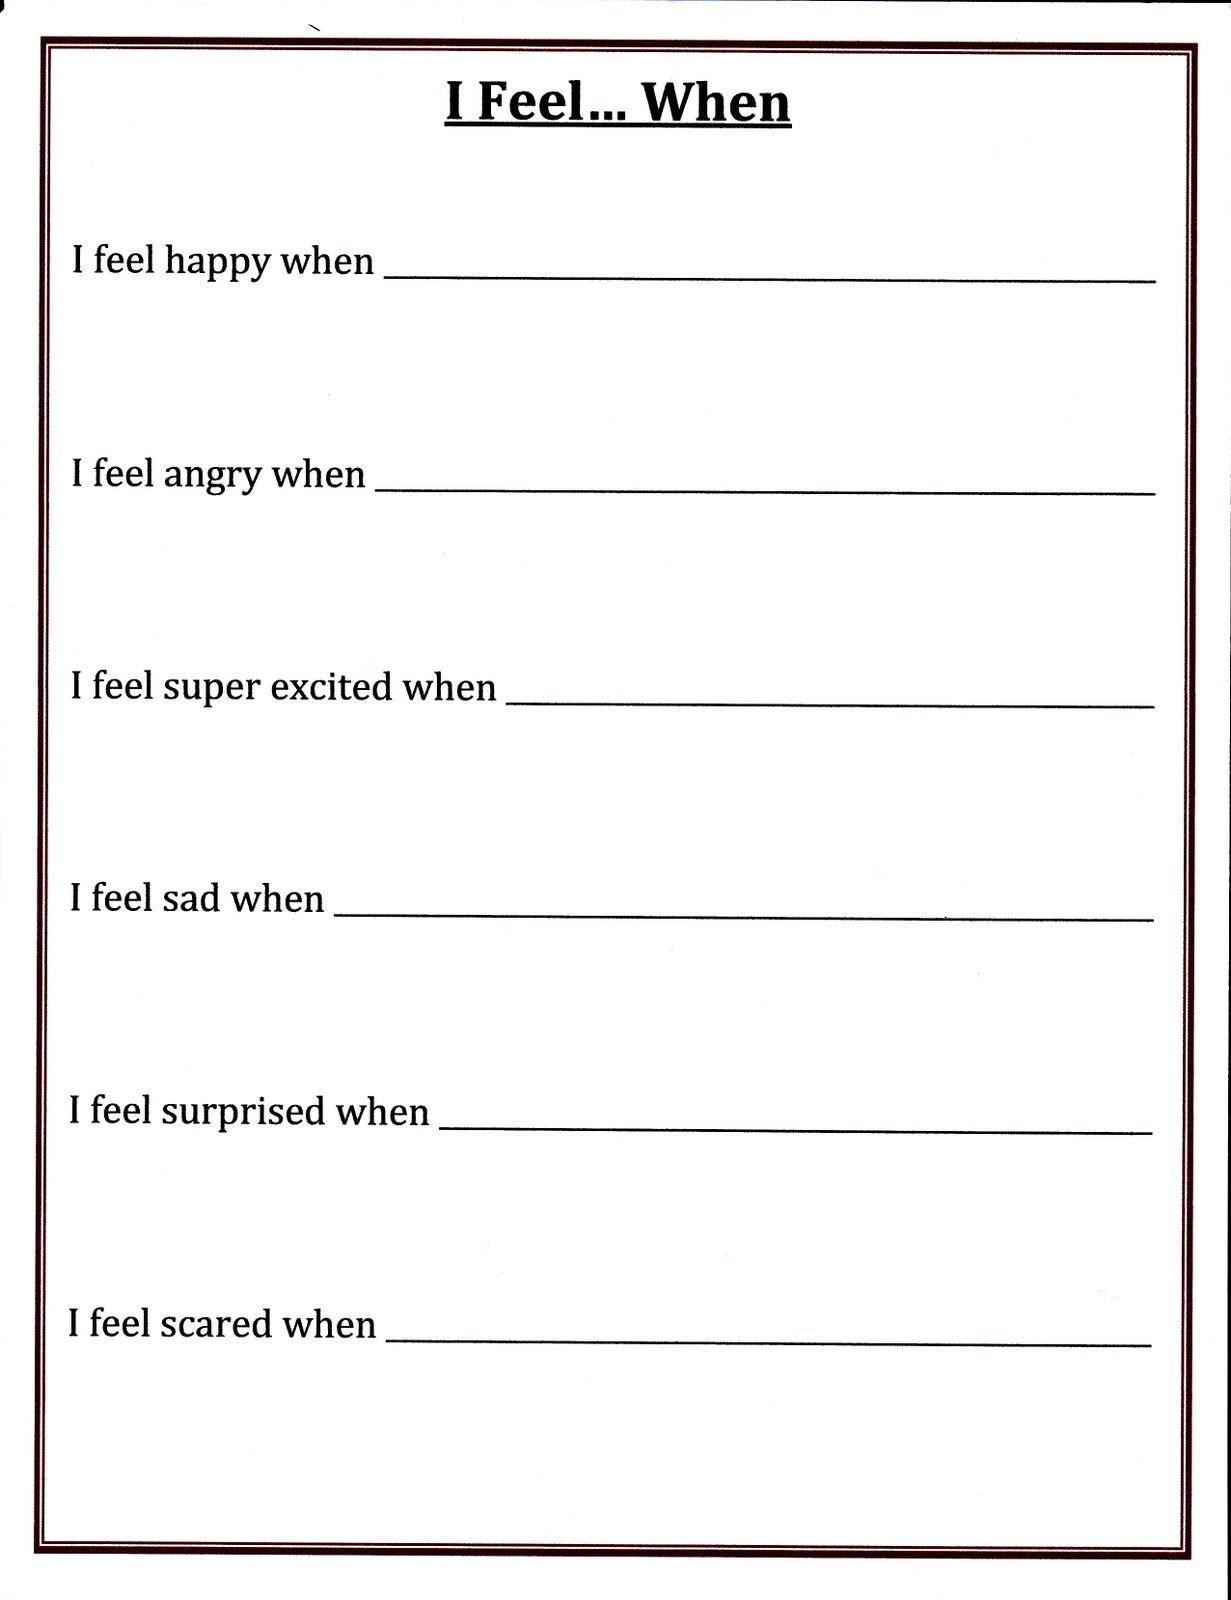 worksheet Worksheets On Respect 17 best images about emotional well being on pinterest student questionnaire cognitive behavioral therapy and counseling